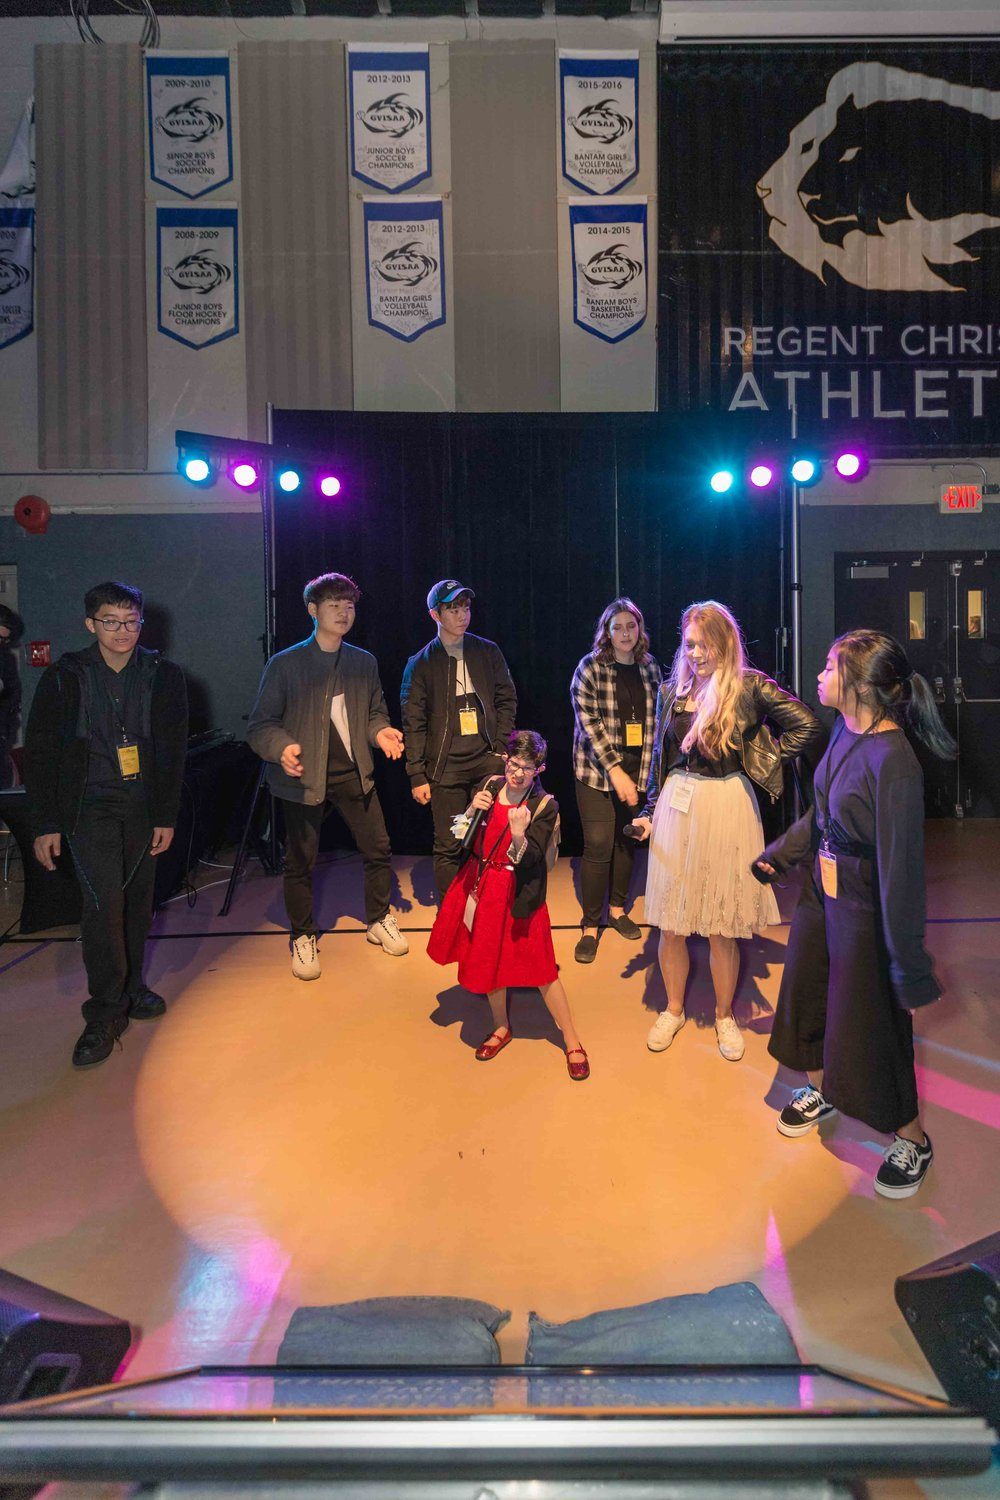 InBetweenDreamsWedding_NightToShine2018_HorizonChurch (149 of 514).jpg